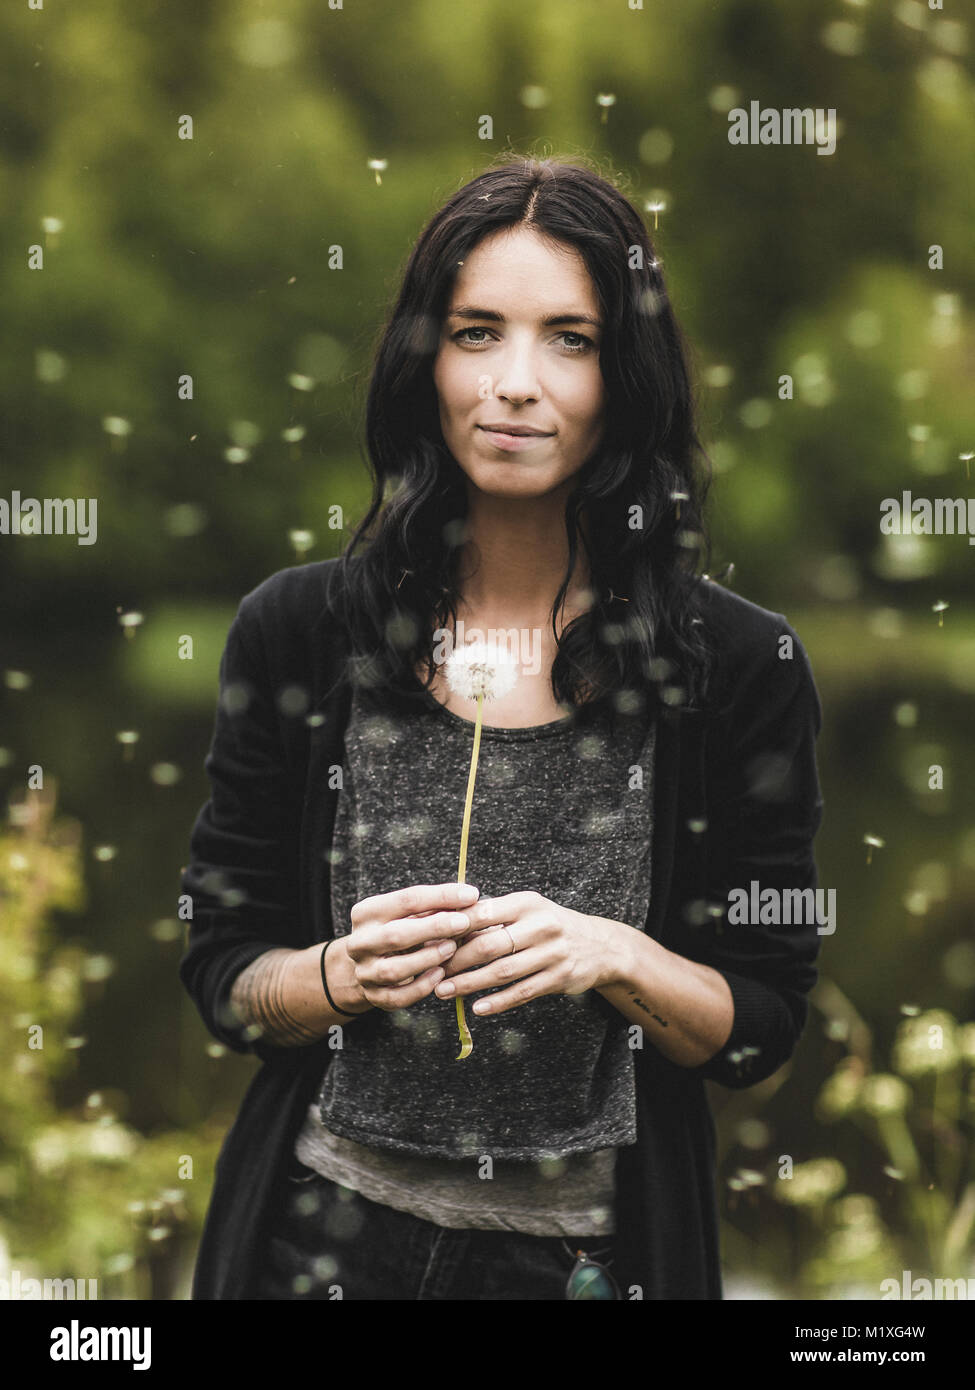 Young woman with dandelion in Sweden - Stock Image